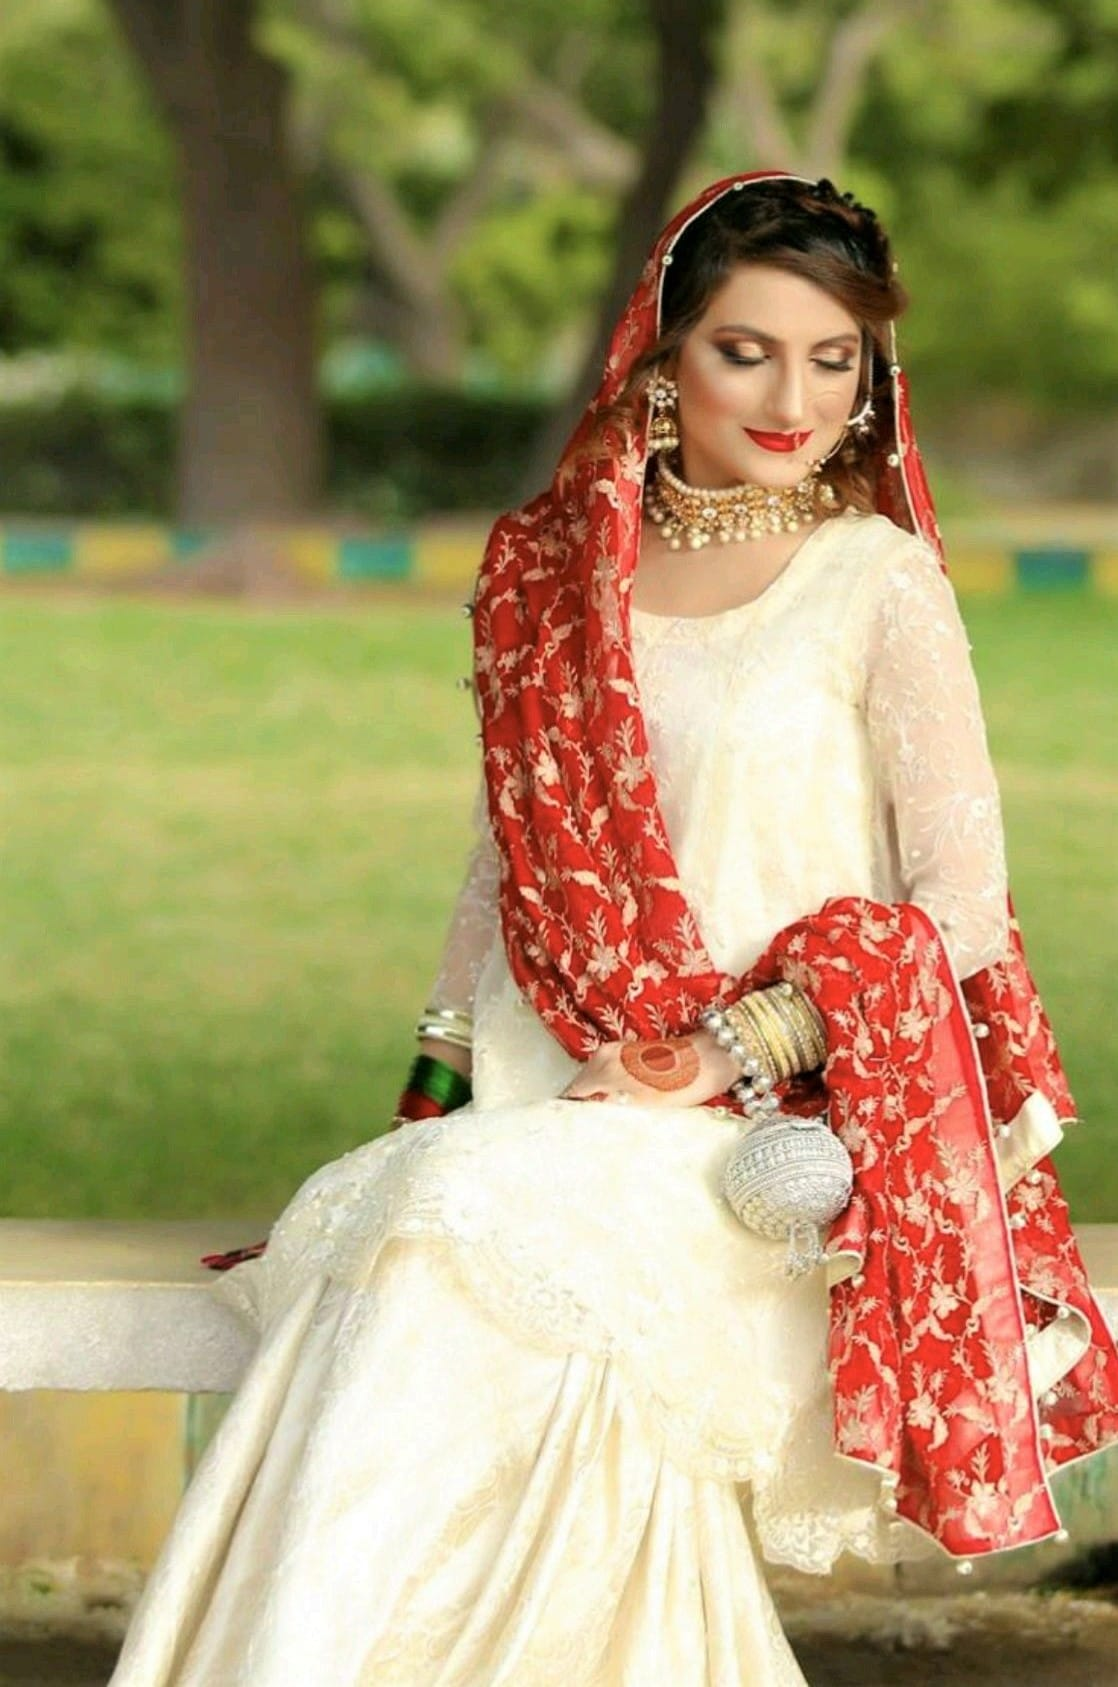 Red Dupatta and white dress for nikah